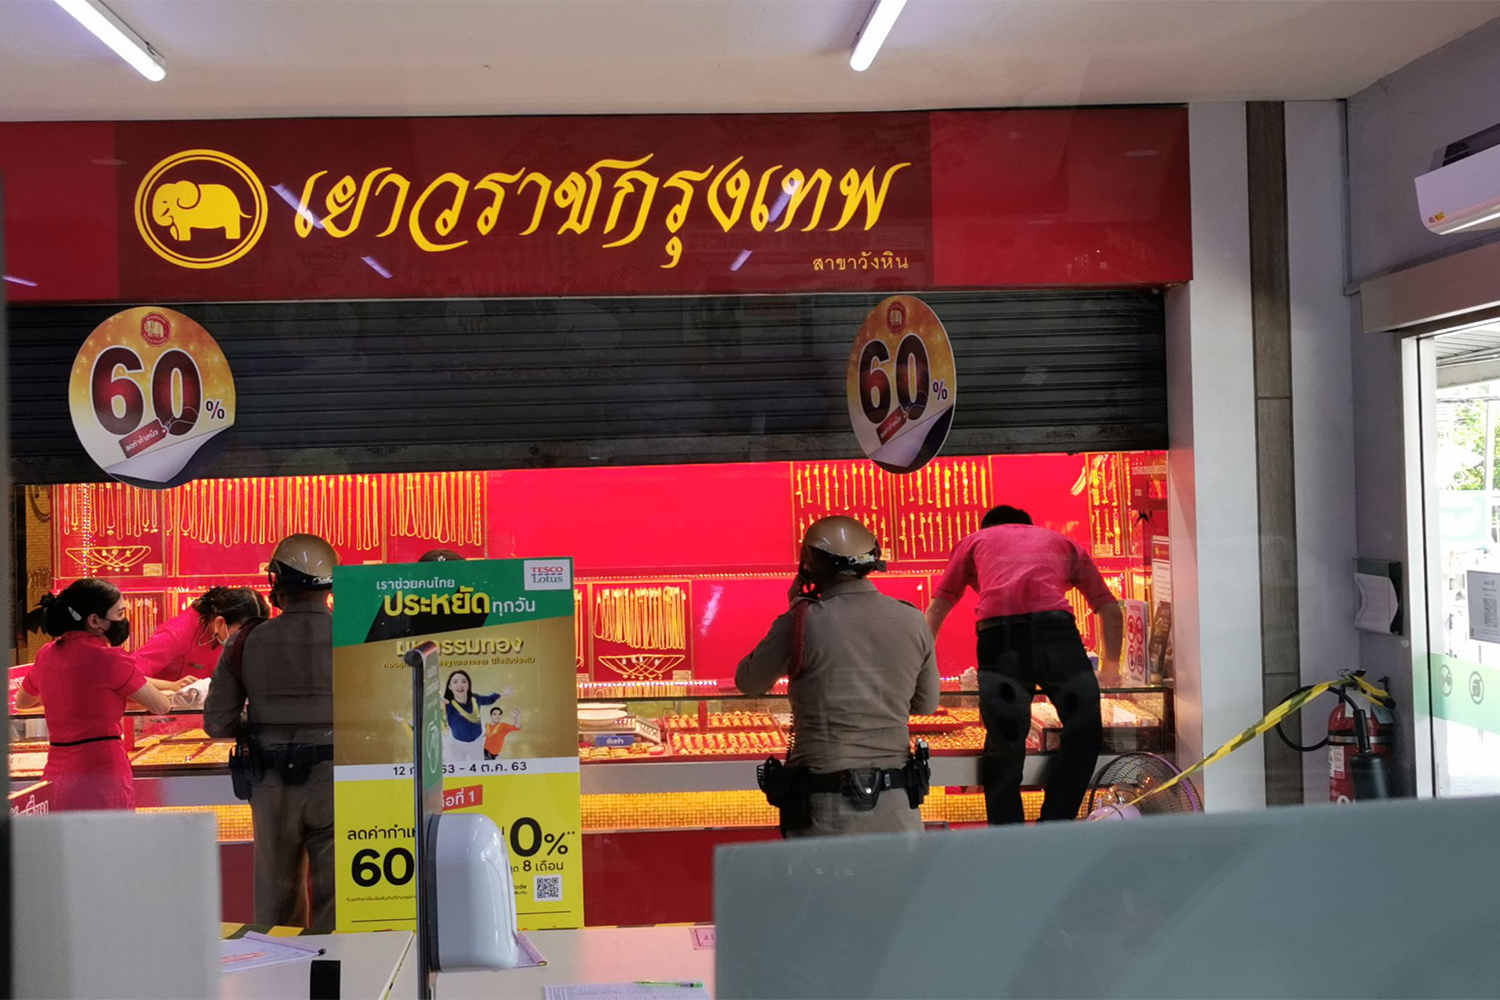 Police seal off Yaowarat Krungthep in Wang Hin area of Lat Phrao district, Bangkok, on Sunday, after a man robbed the gold shop and escaped with gold ornaments worth about 5.6 million baht.